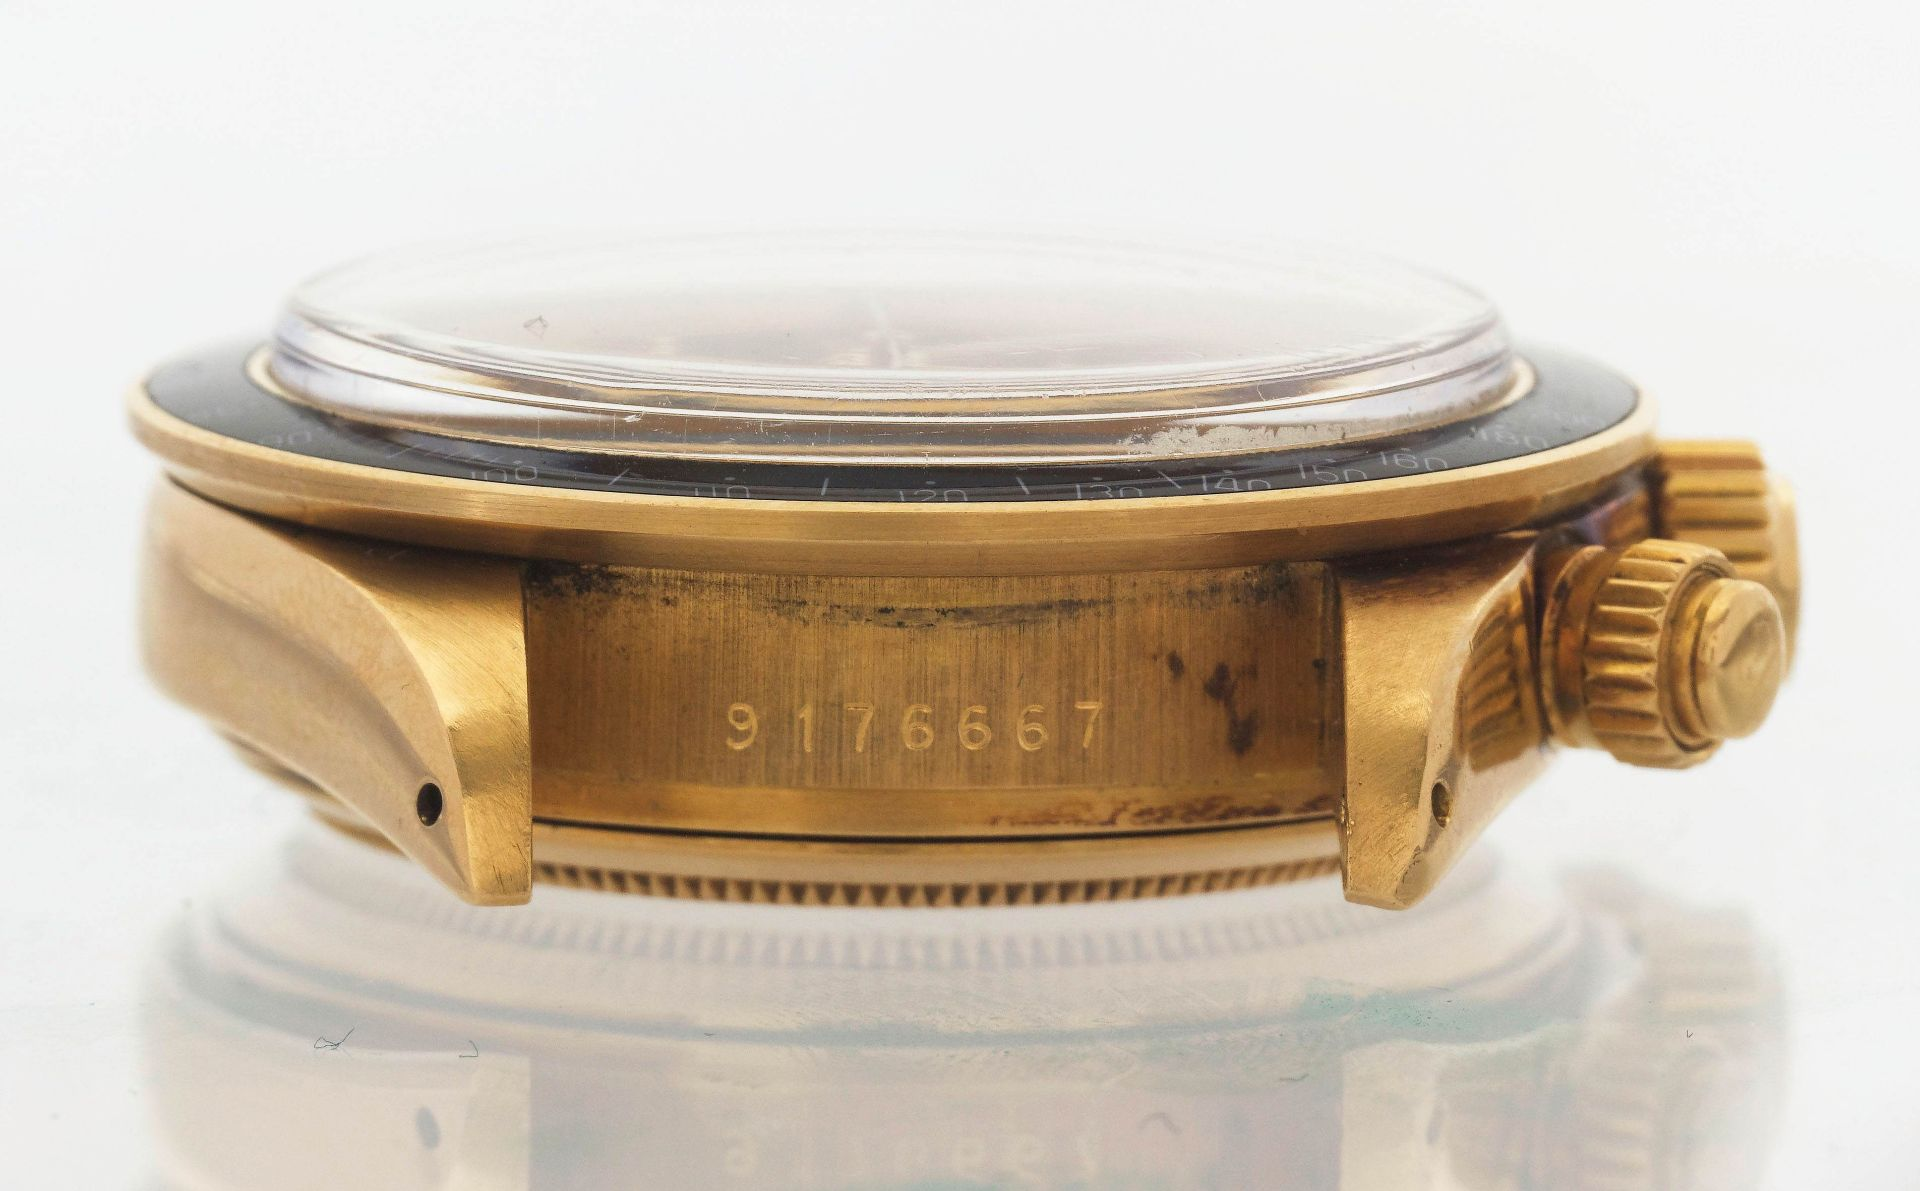 """Rolex, extremely rare cosmograph with original warranty certificate and """"Sigma"""" dial, 1987. - Image 6 of 9"""